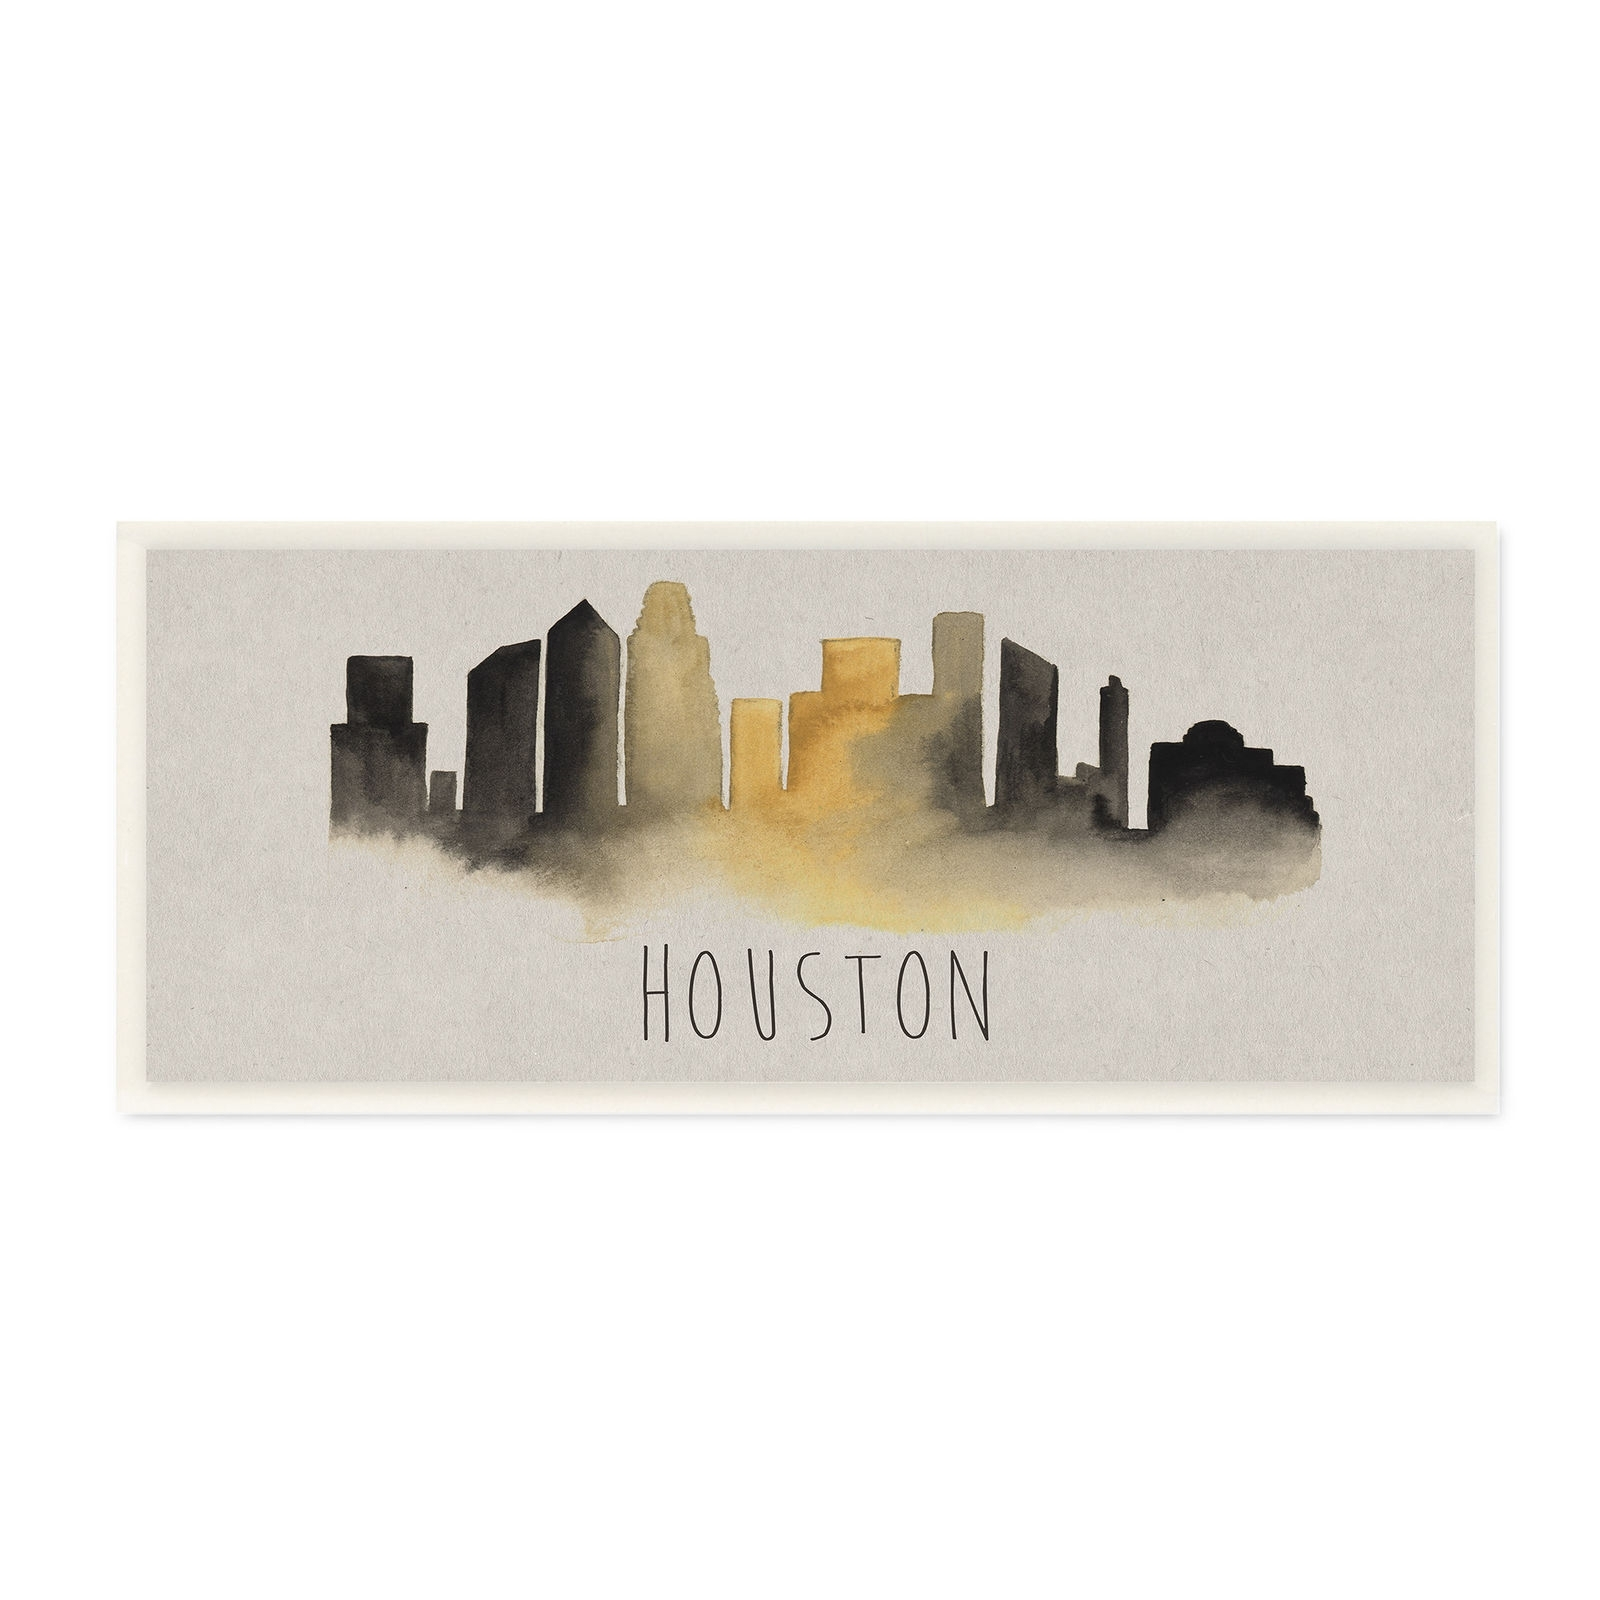 Houston Skyline Silhouette Stretched Canvas Wall Art Id 3455516 | Ebay For Current Houston Canvas Wall Art (View 12 of 15)